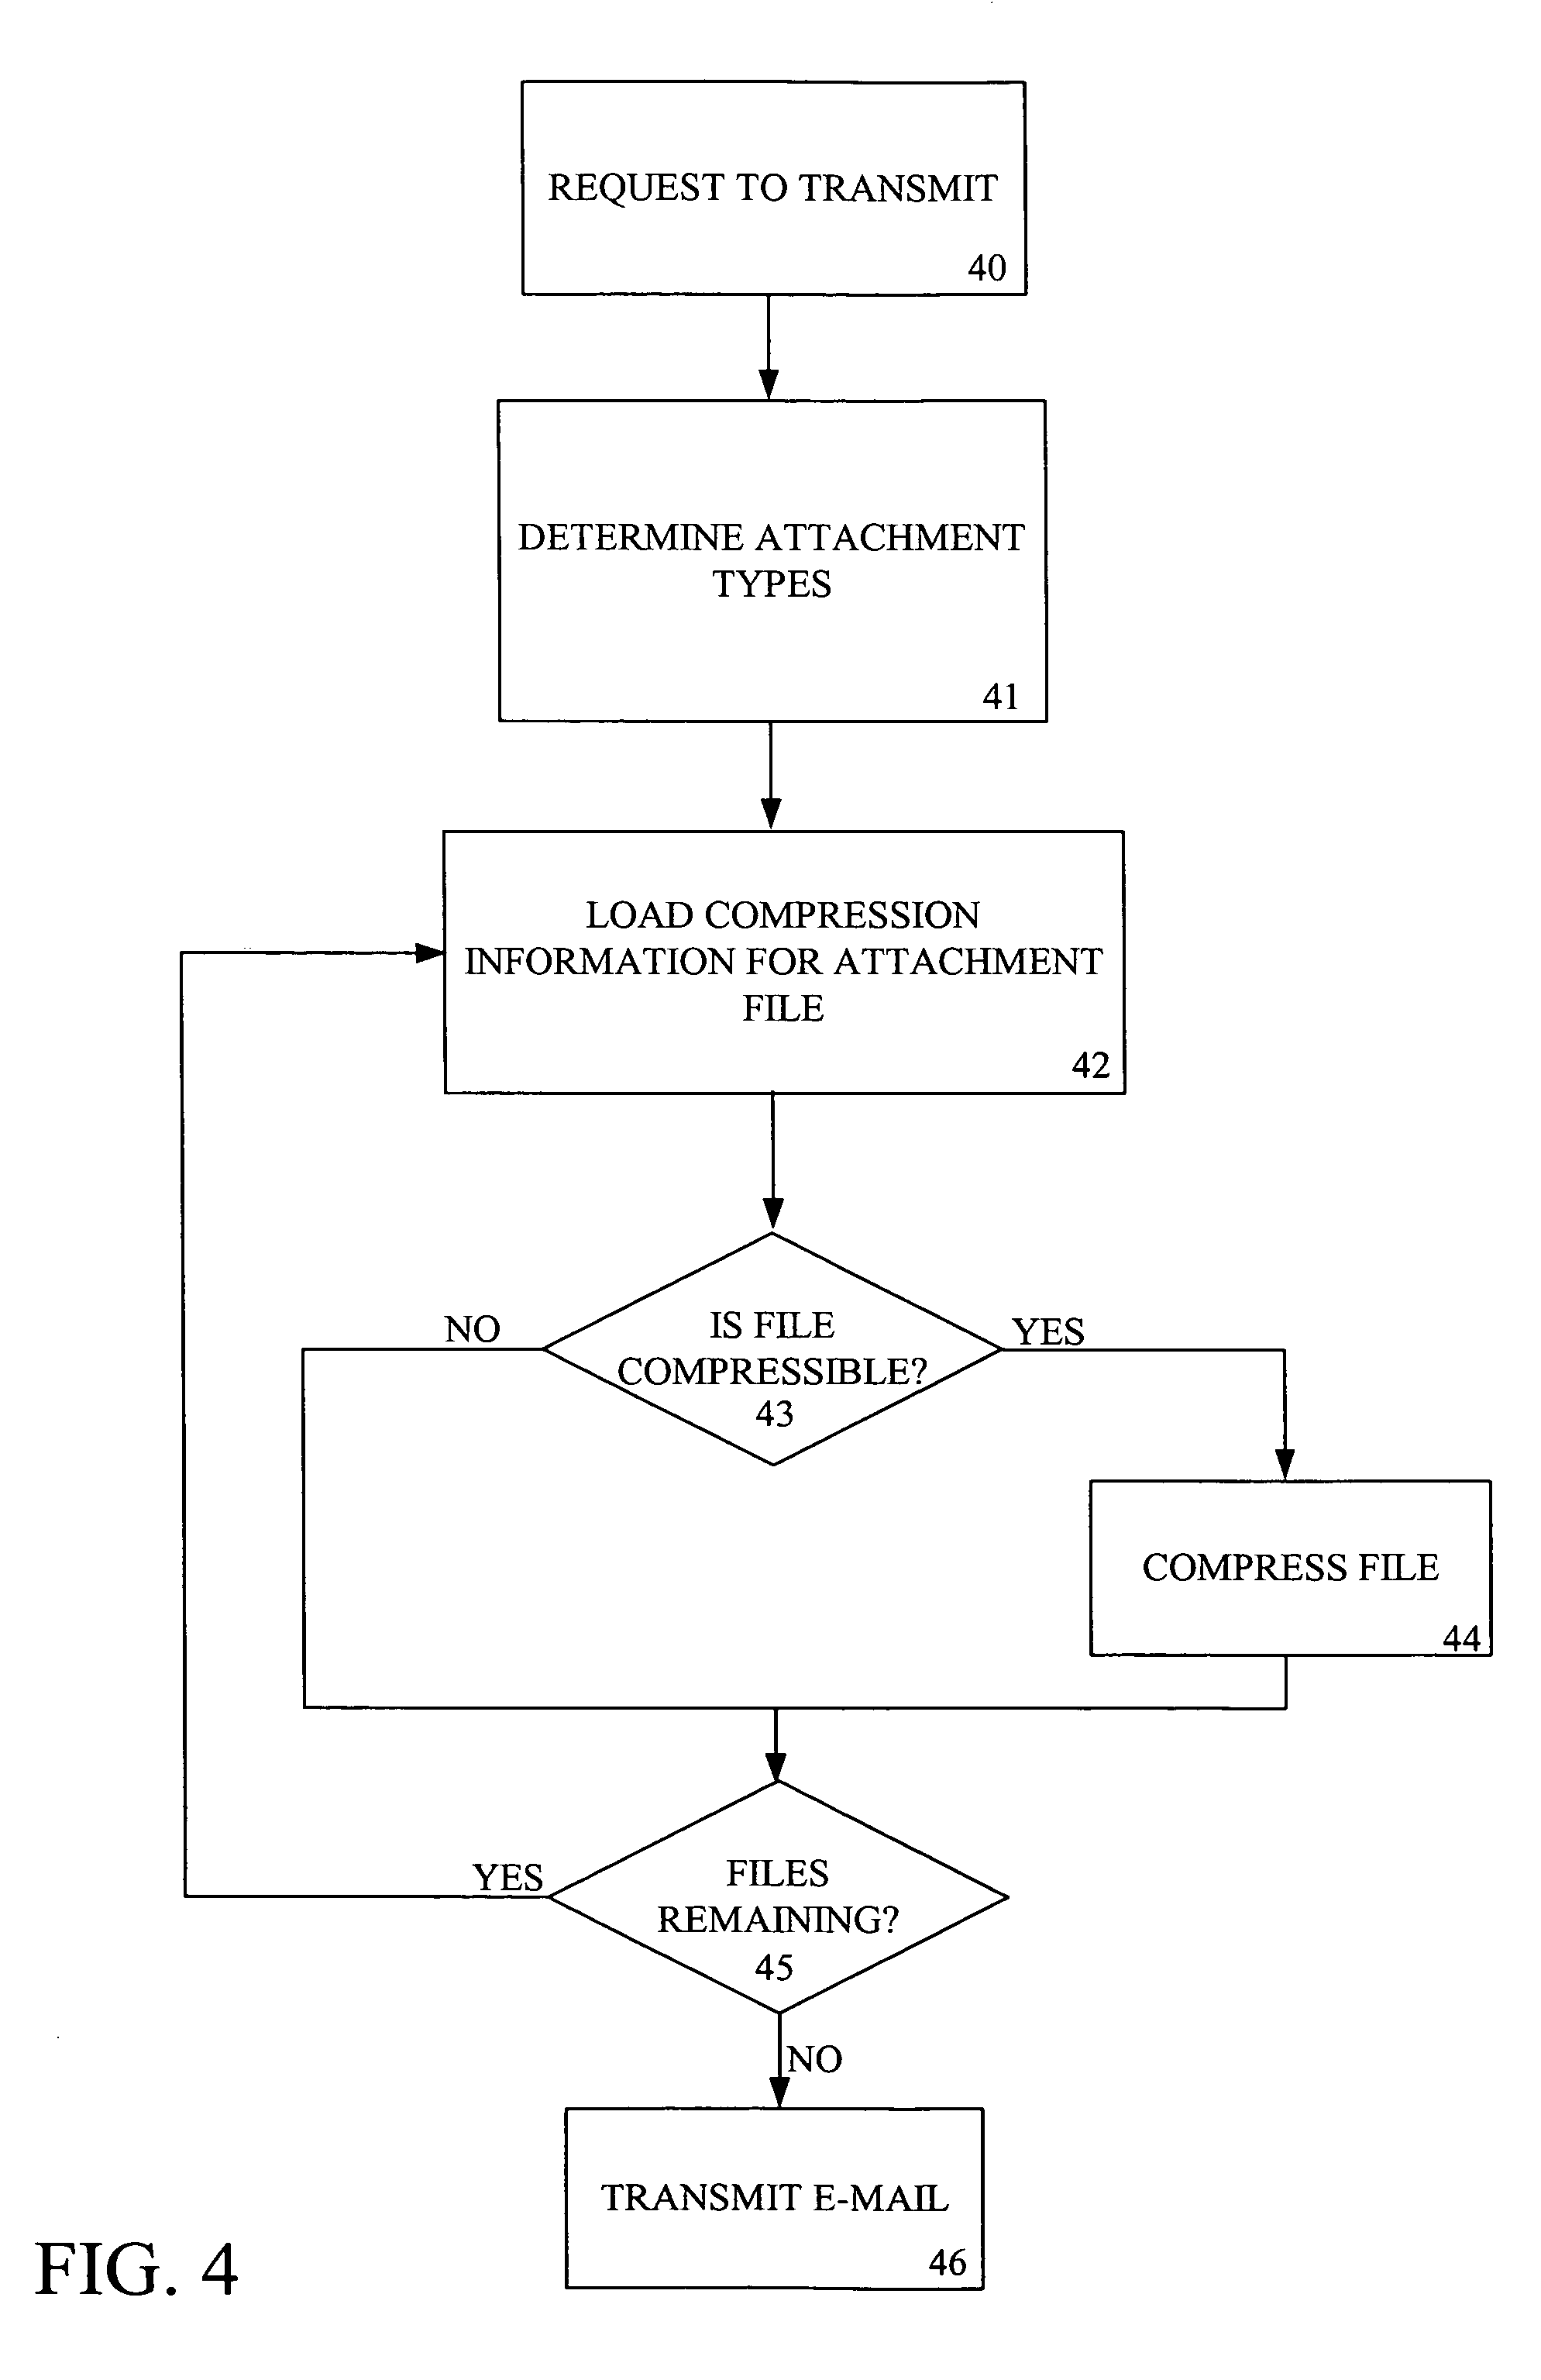 an examination of the data compression Abstract: a data compression scheme that exploits  data compression  schemes can be categorized by the  tains a more complete analysis and proofs.